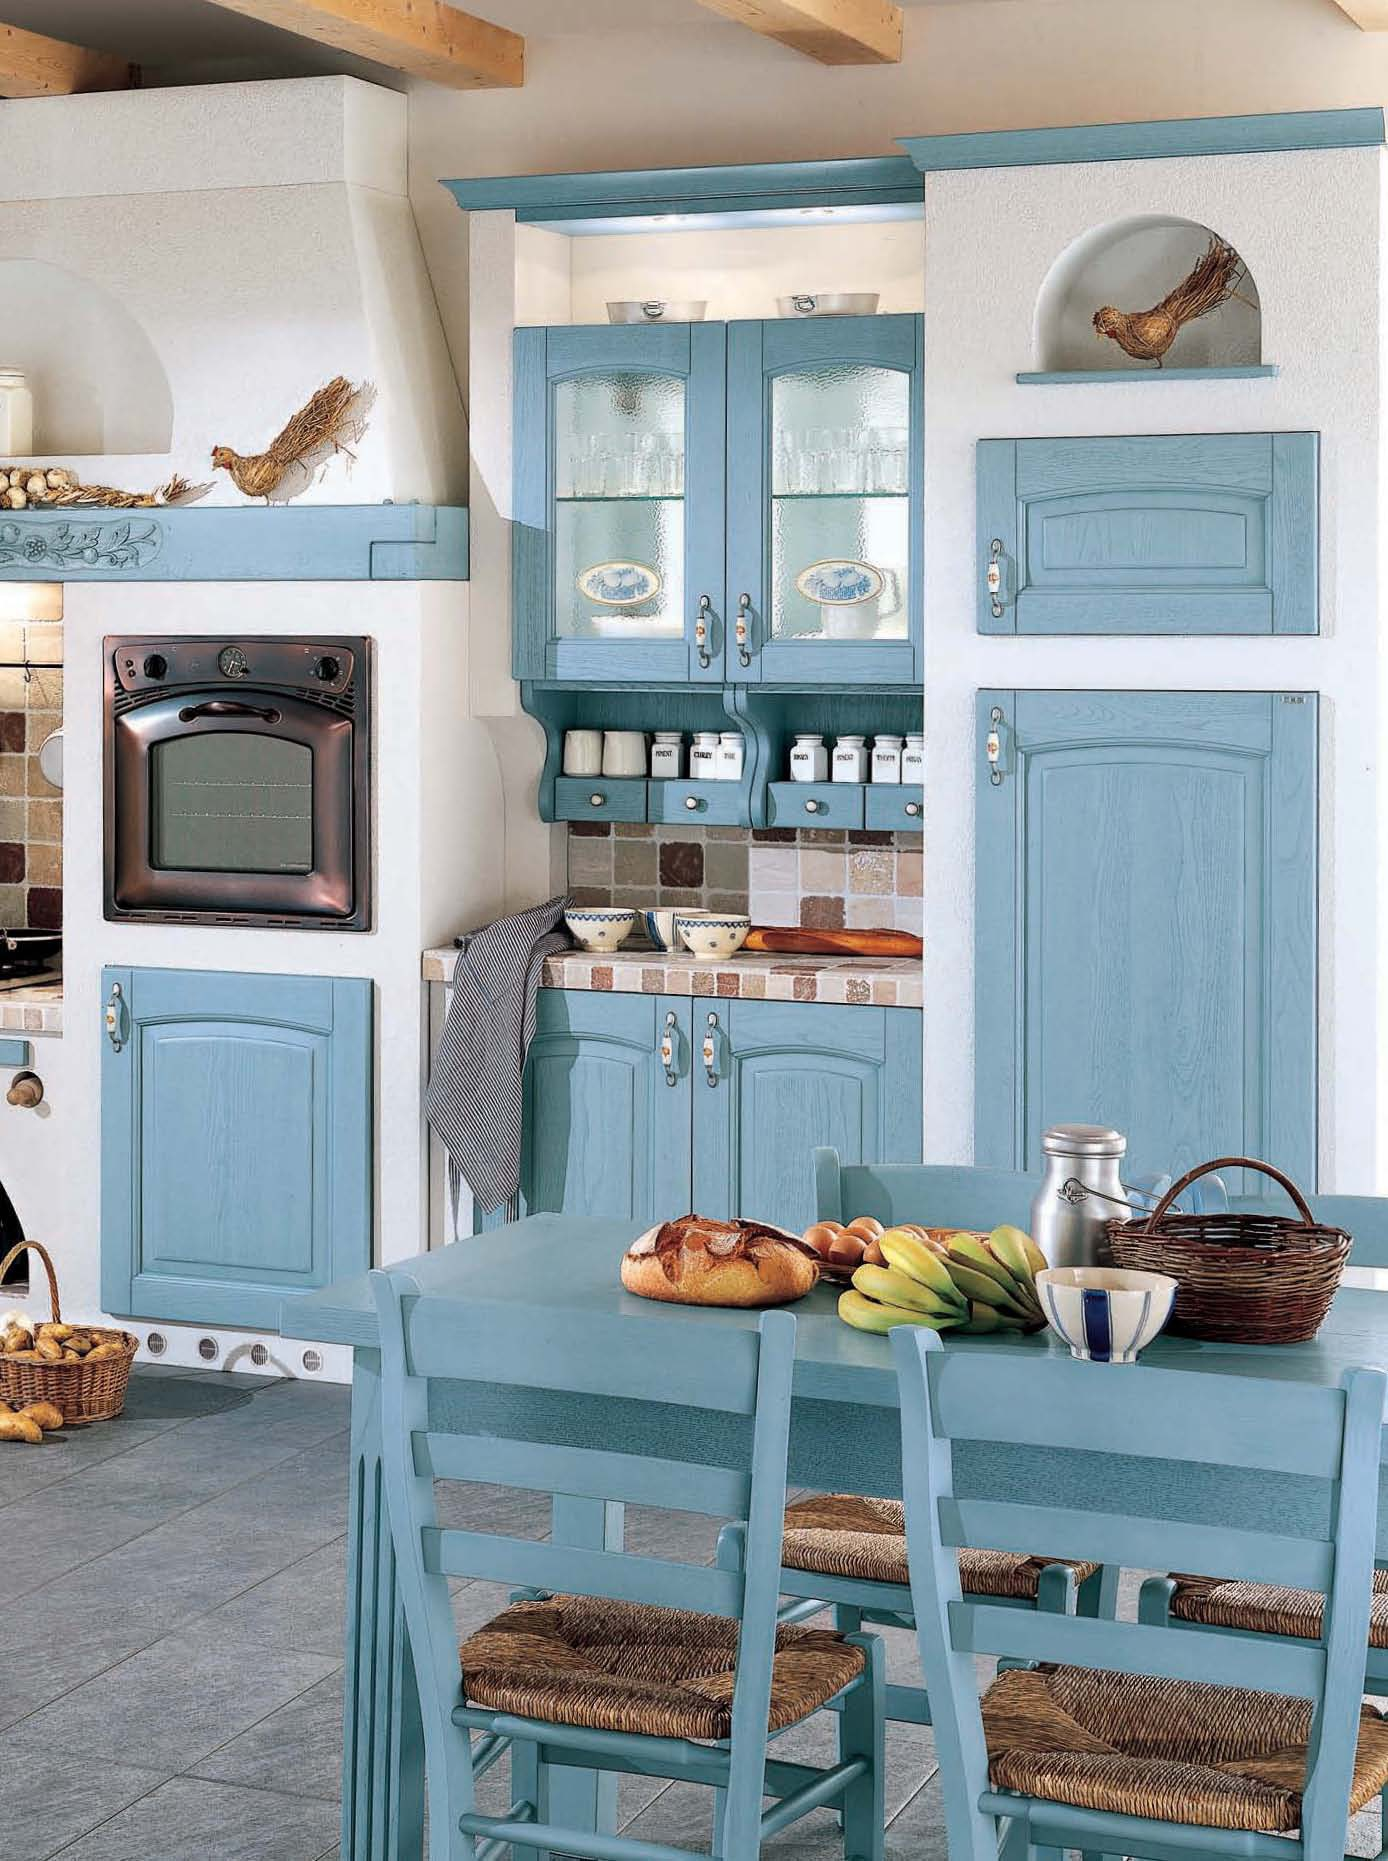 Kitchen Barchessa comp.6 from the Italian manufacturer Ar-Tre ...